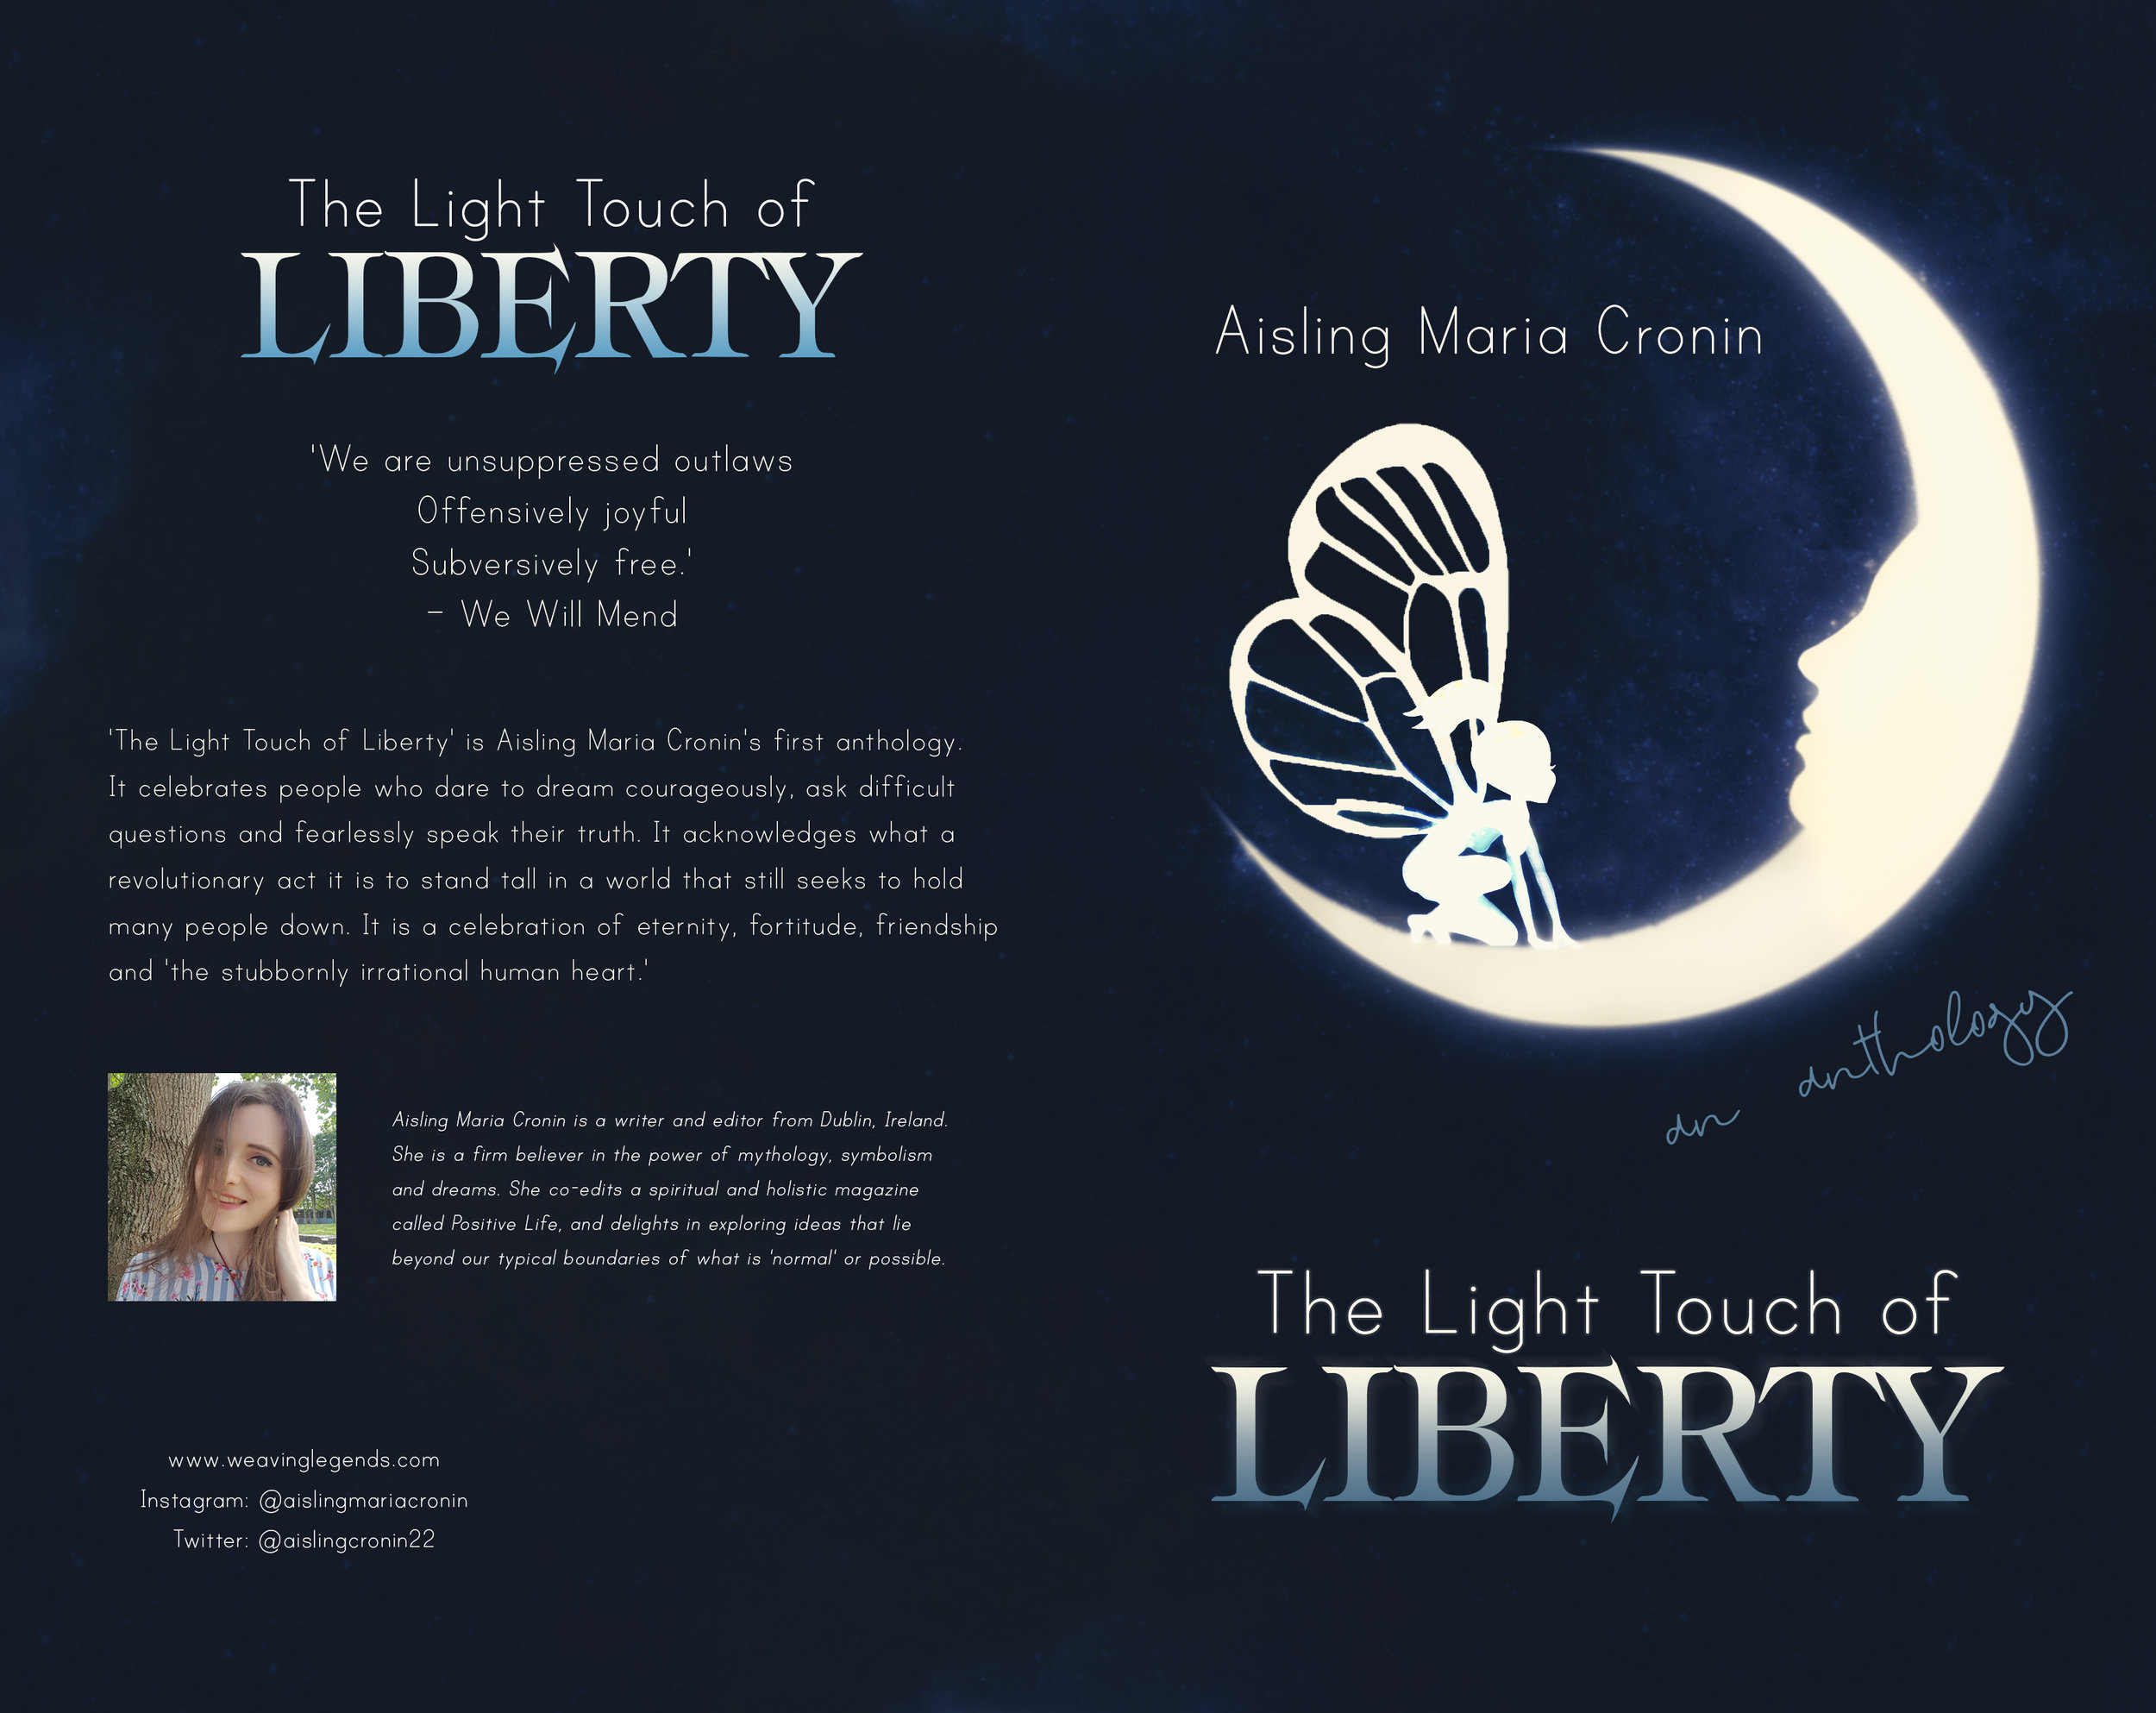 The Light Touch of Liberty by Aisling Maria Cronin, Book Cover Design by Violeta Nedkova